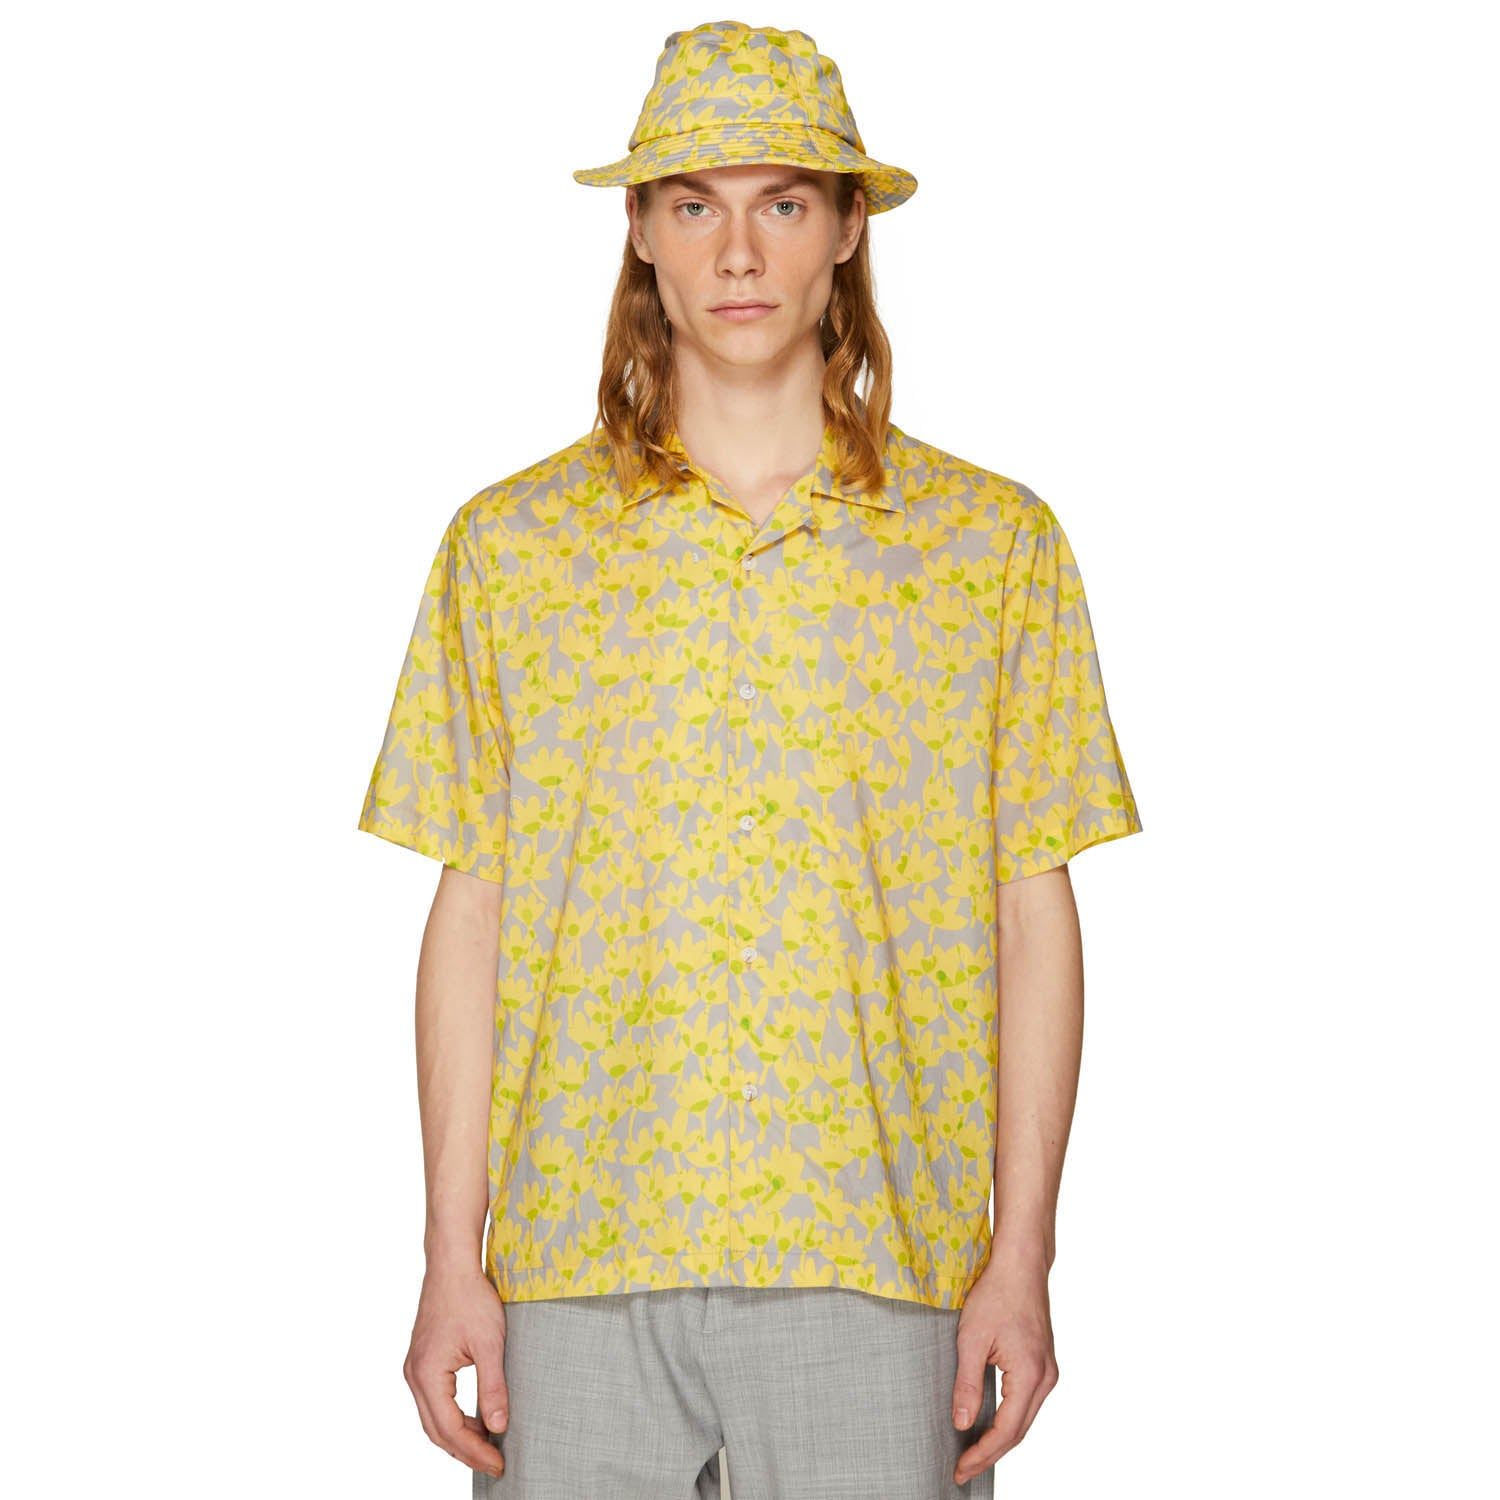 PRINTED SUMMER SHIRT LEMON YELLOW/ICE GREY